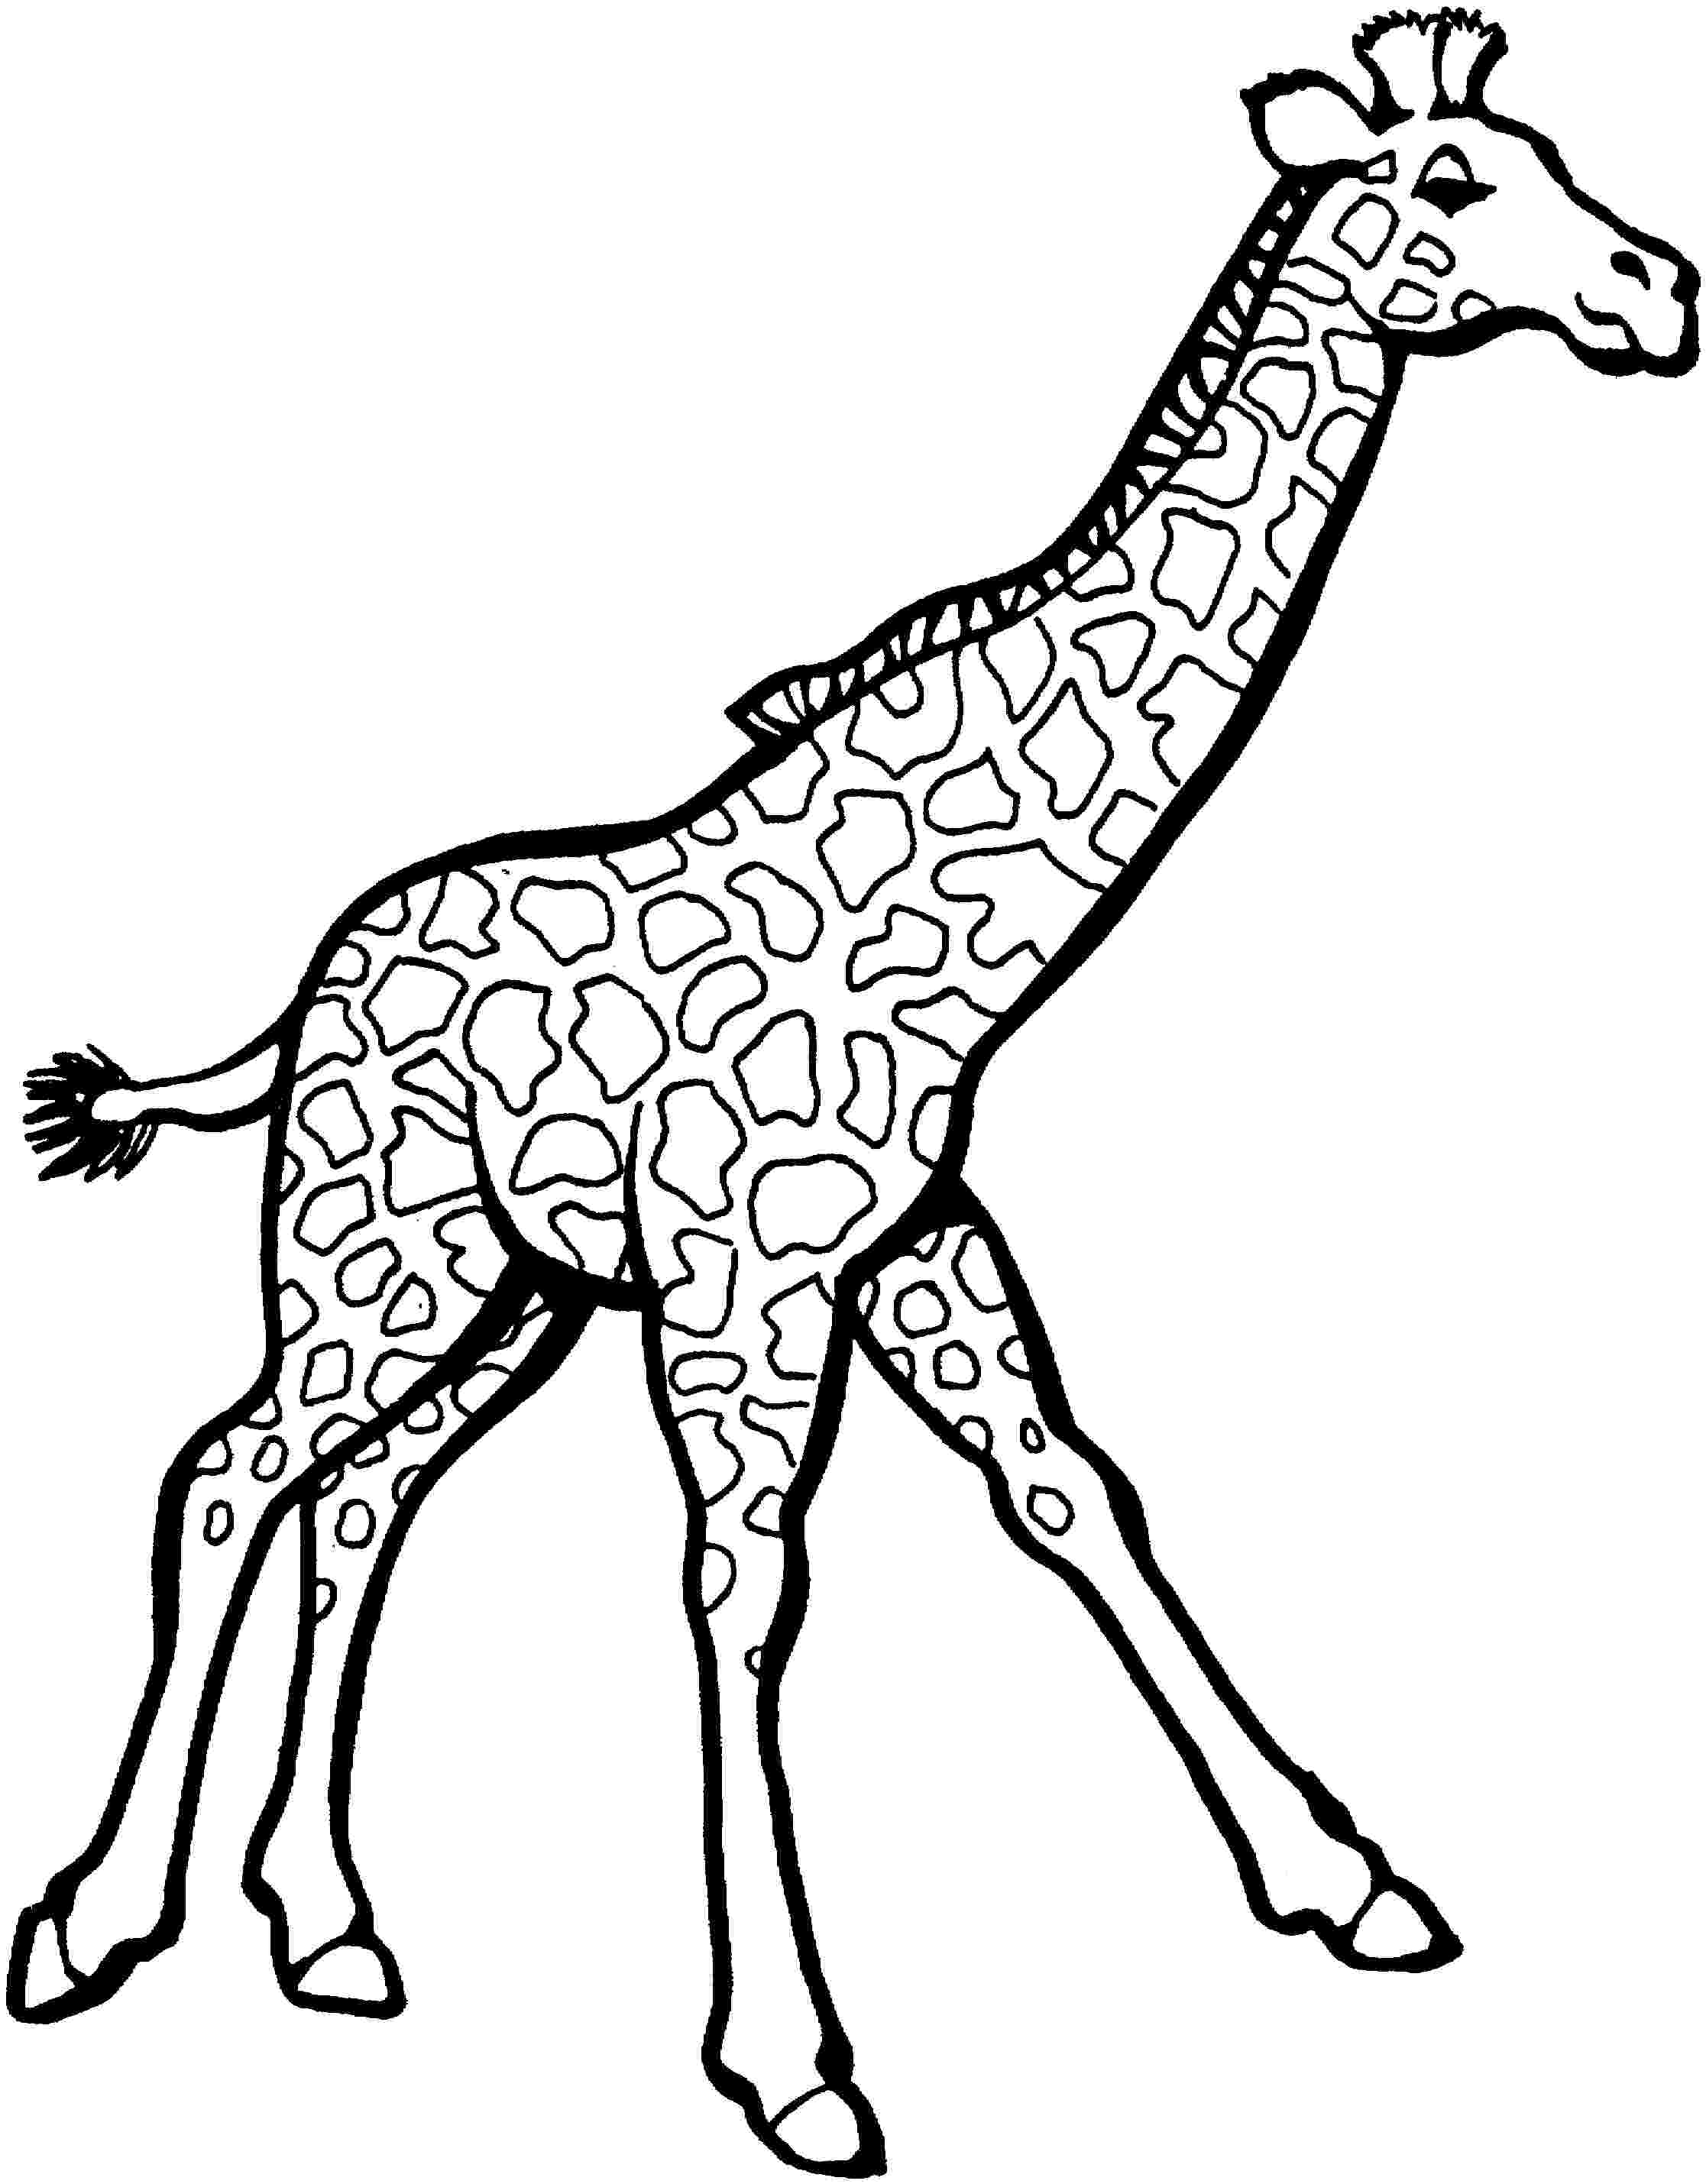 coloring page giraffe simple giraffe outline print out and color pictures of a coloring giraffe page